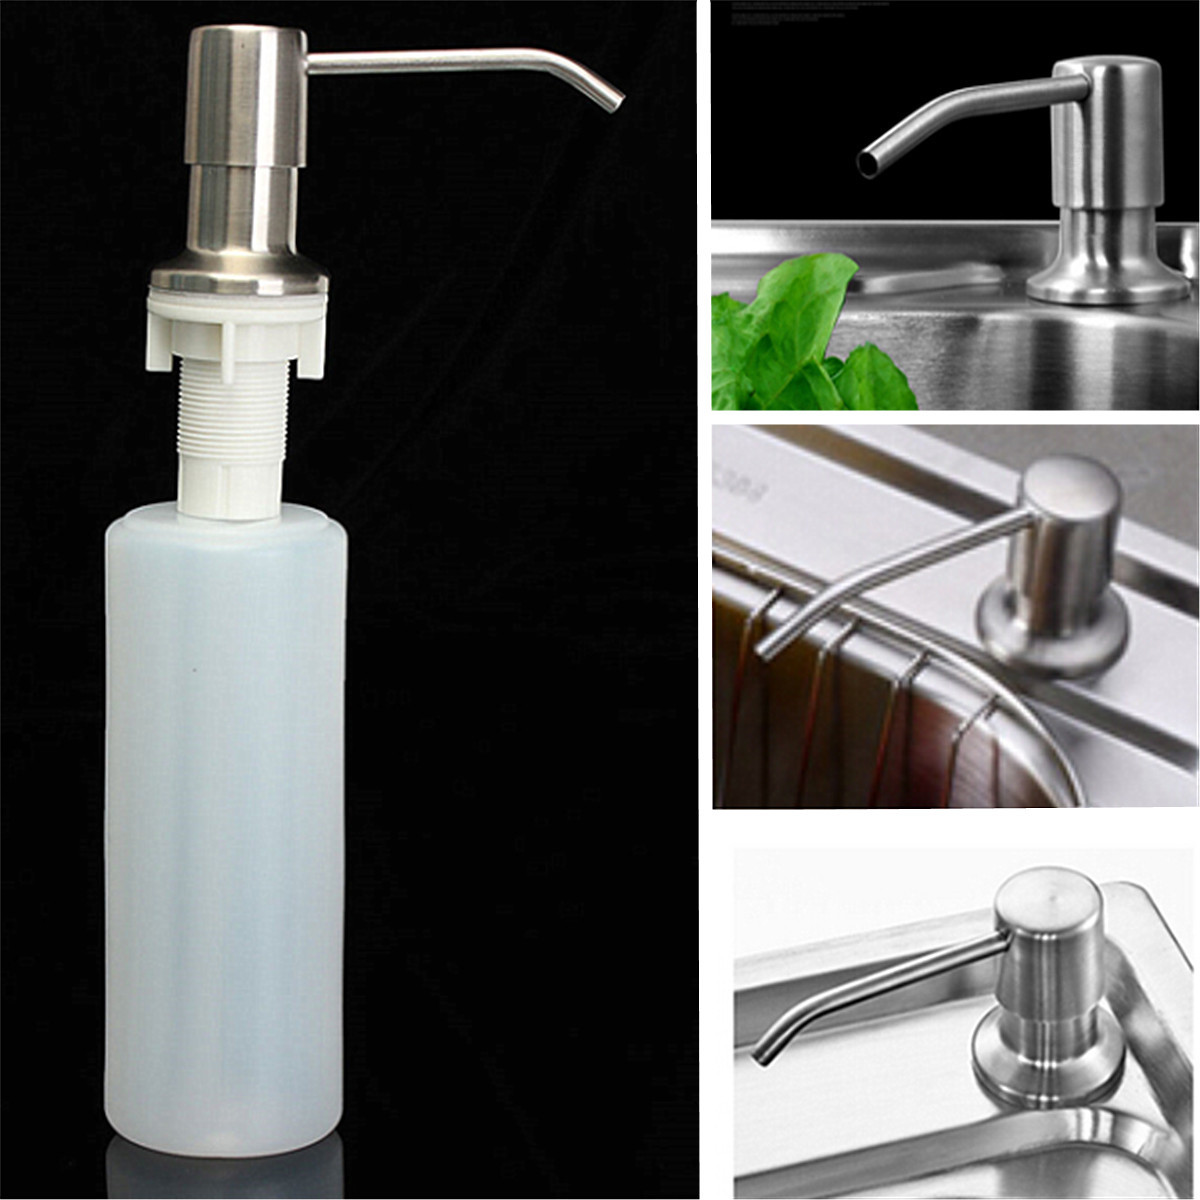 350ml Kitchen Bathroom Sink Liquid Soap Dispenser